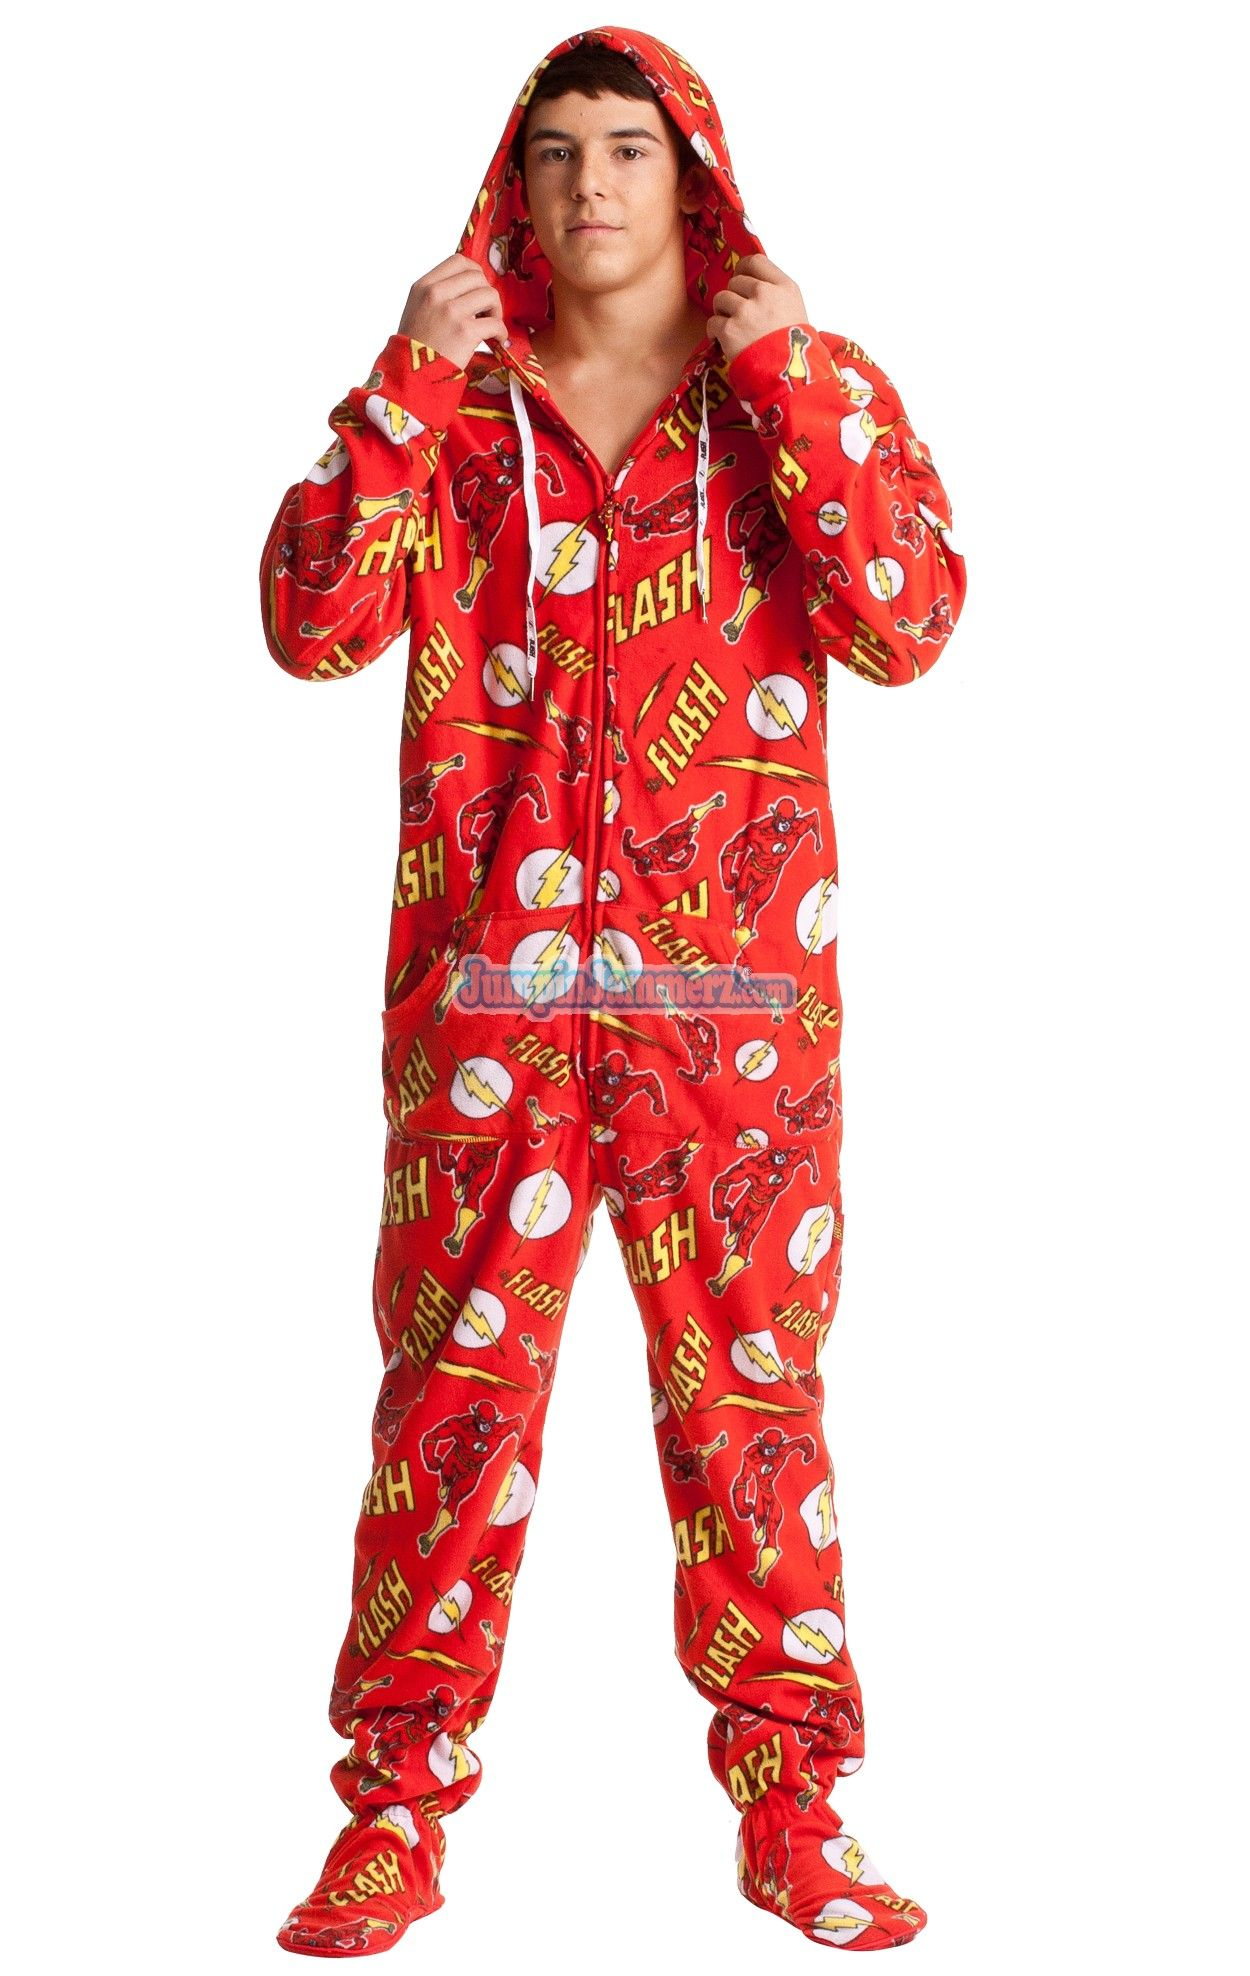 78233bce67 Buy The Flash Adult Onesie Pajamas from DC Comics Online | #1 Pajama Store